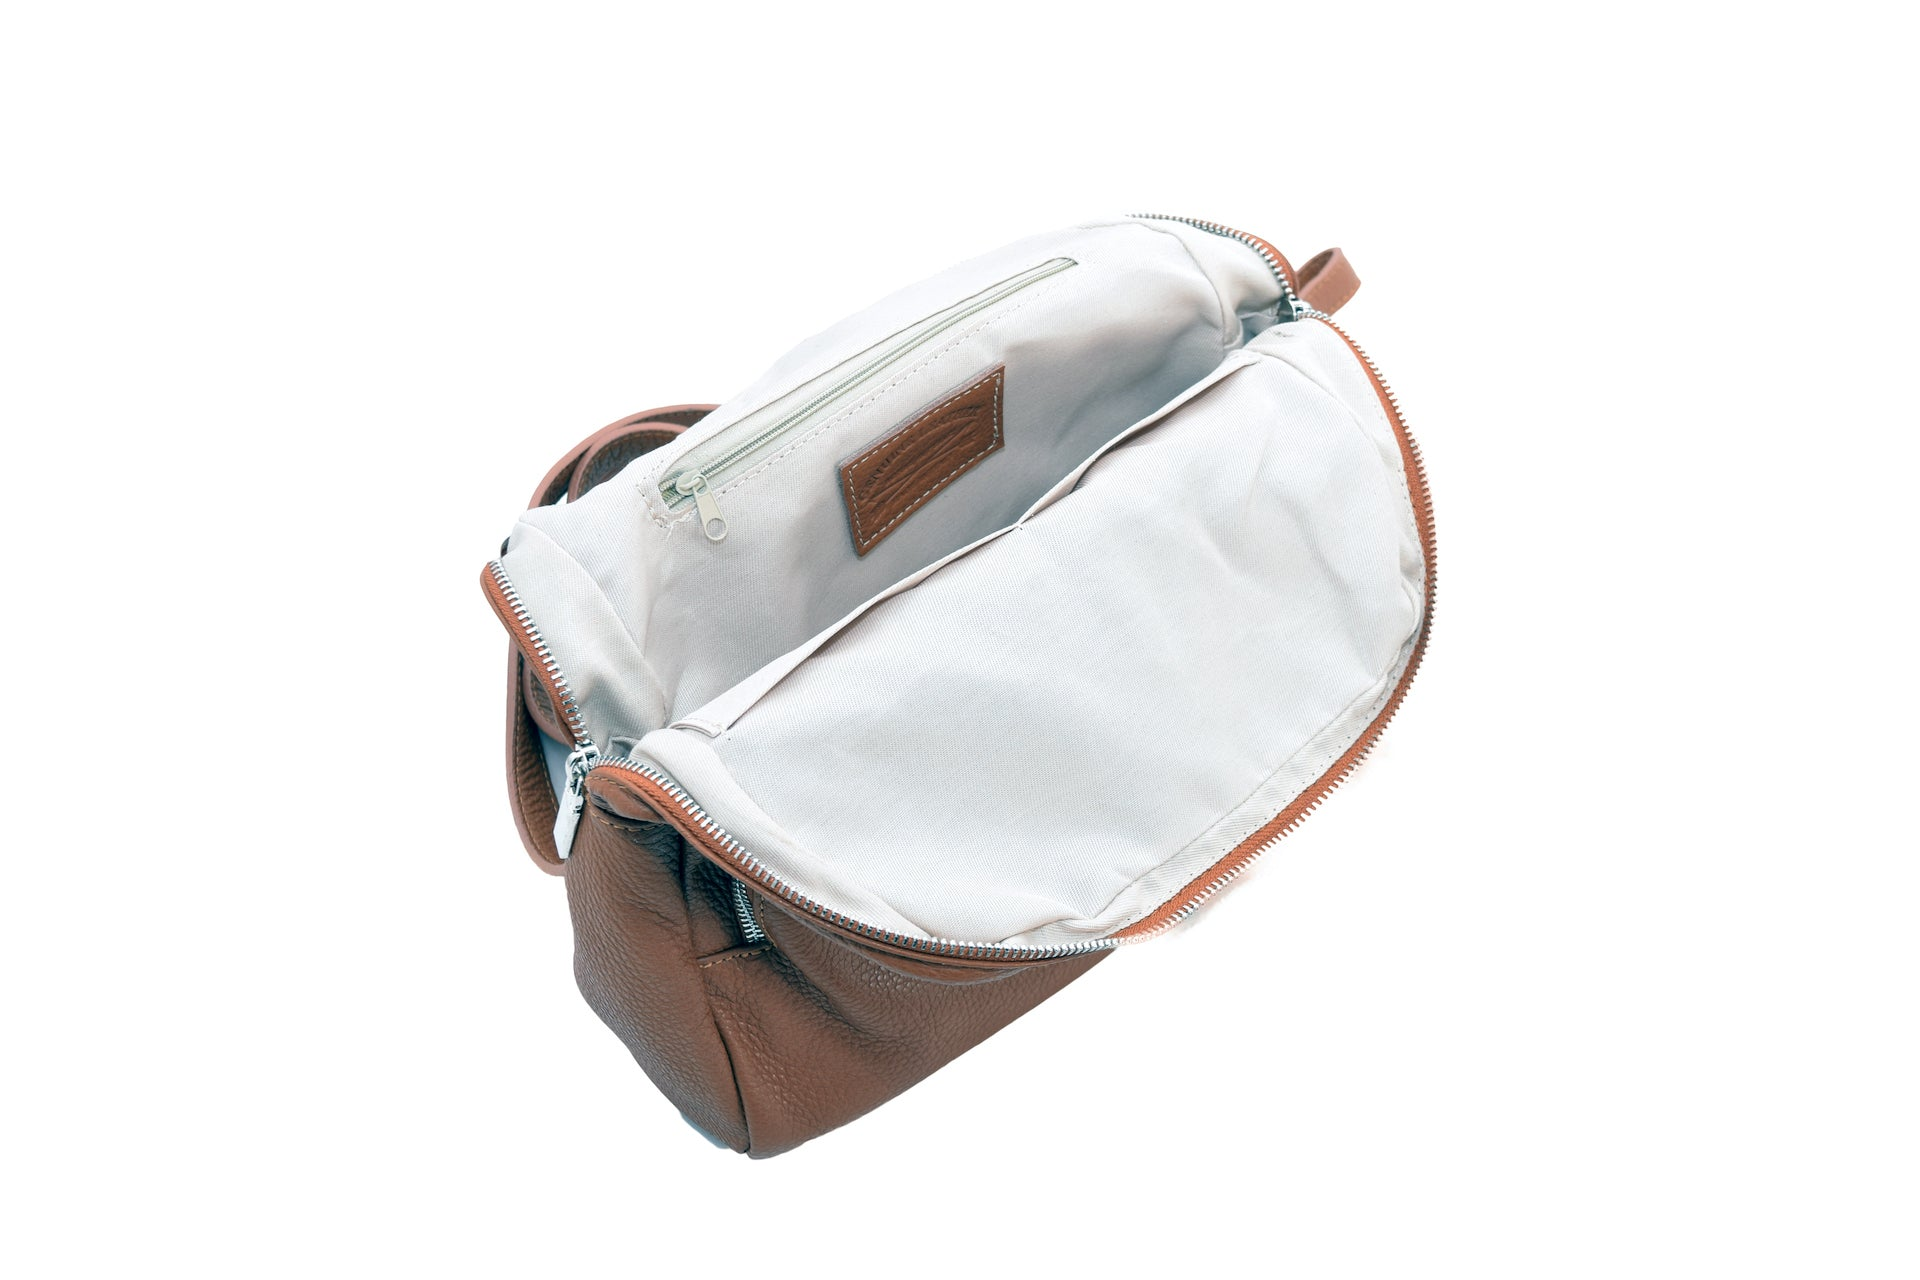 Tan leather backpack with three external compartments and silver hardware